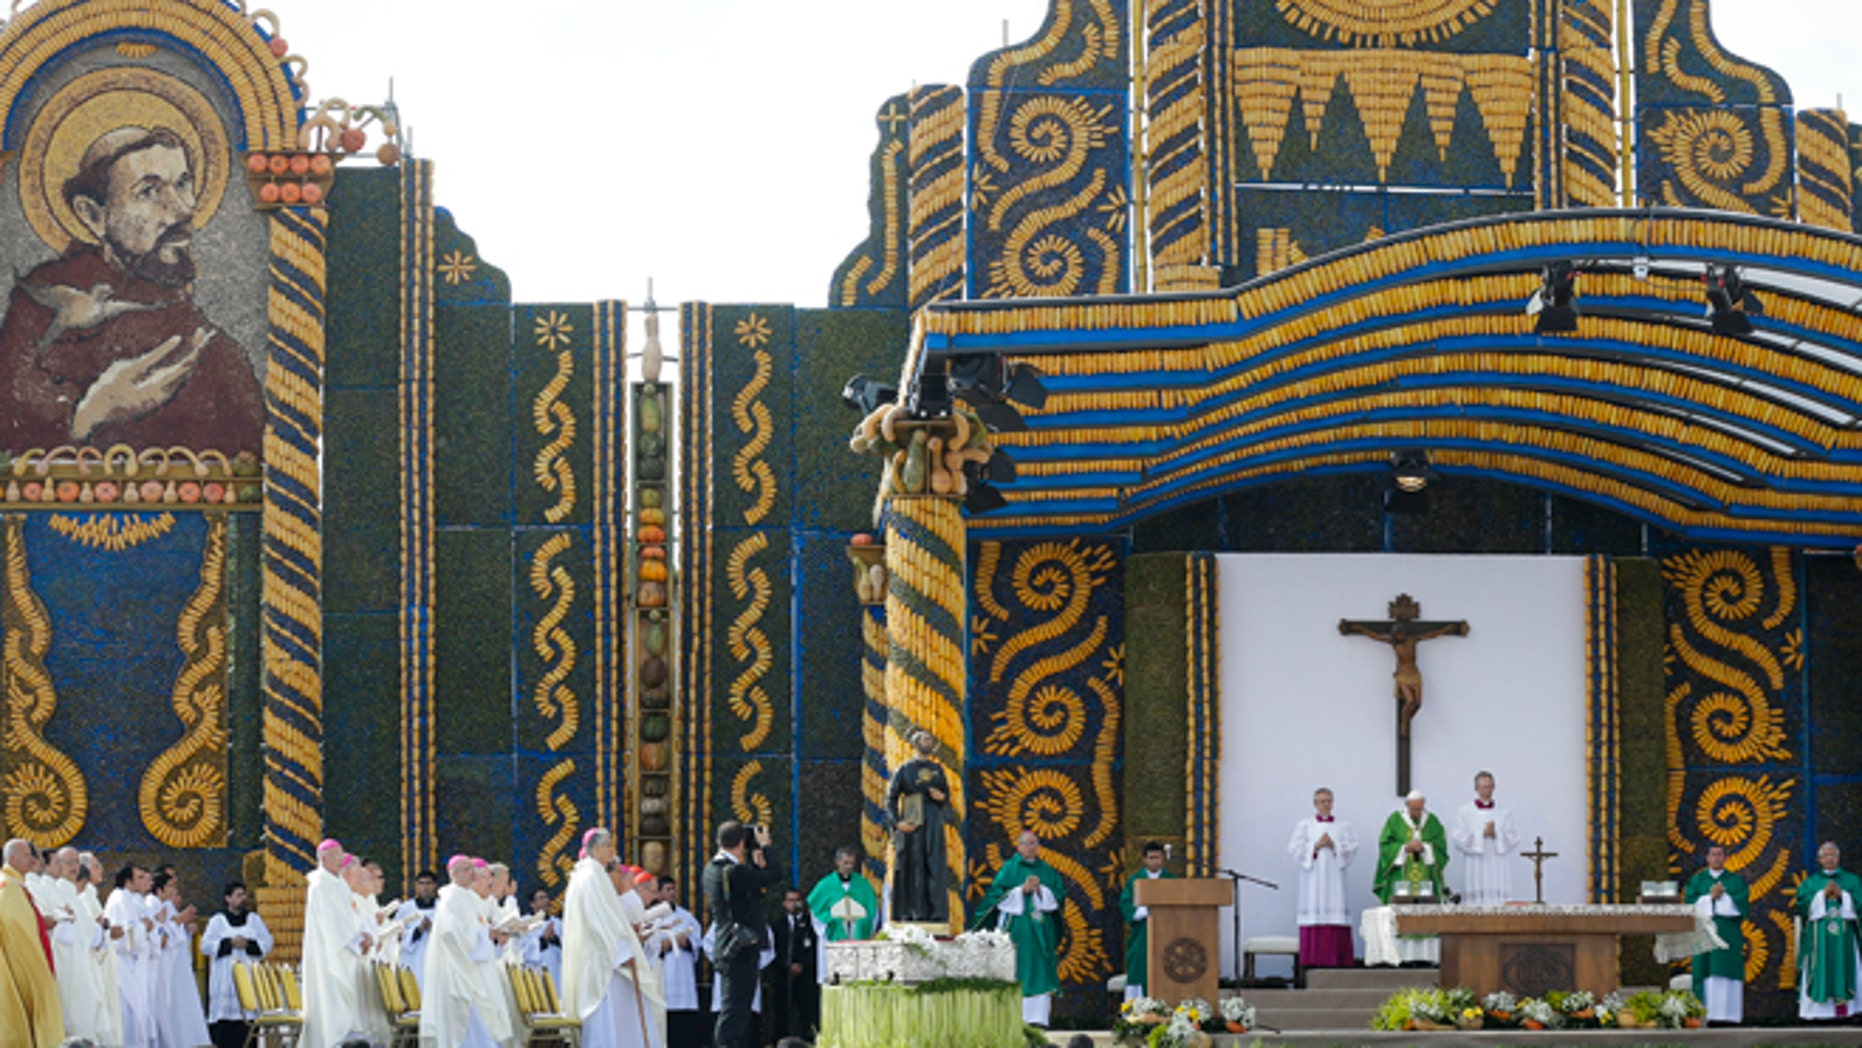 July 12, 2015: Pope Francis celebrates mass in Asuncion, Paraguay.